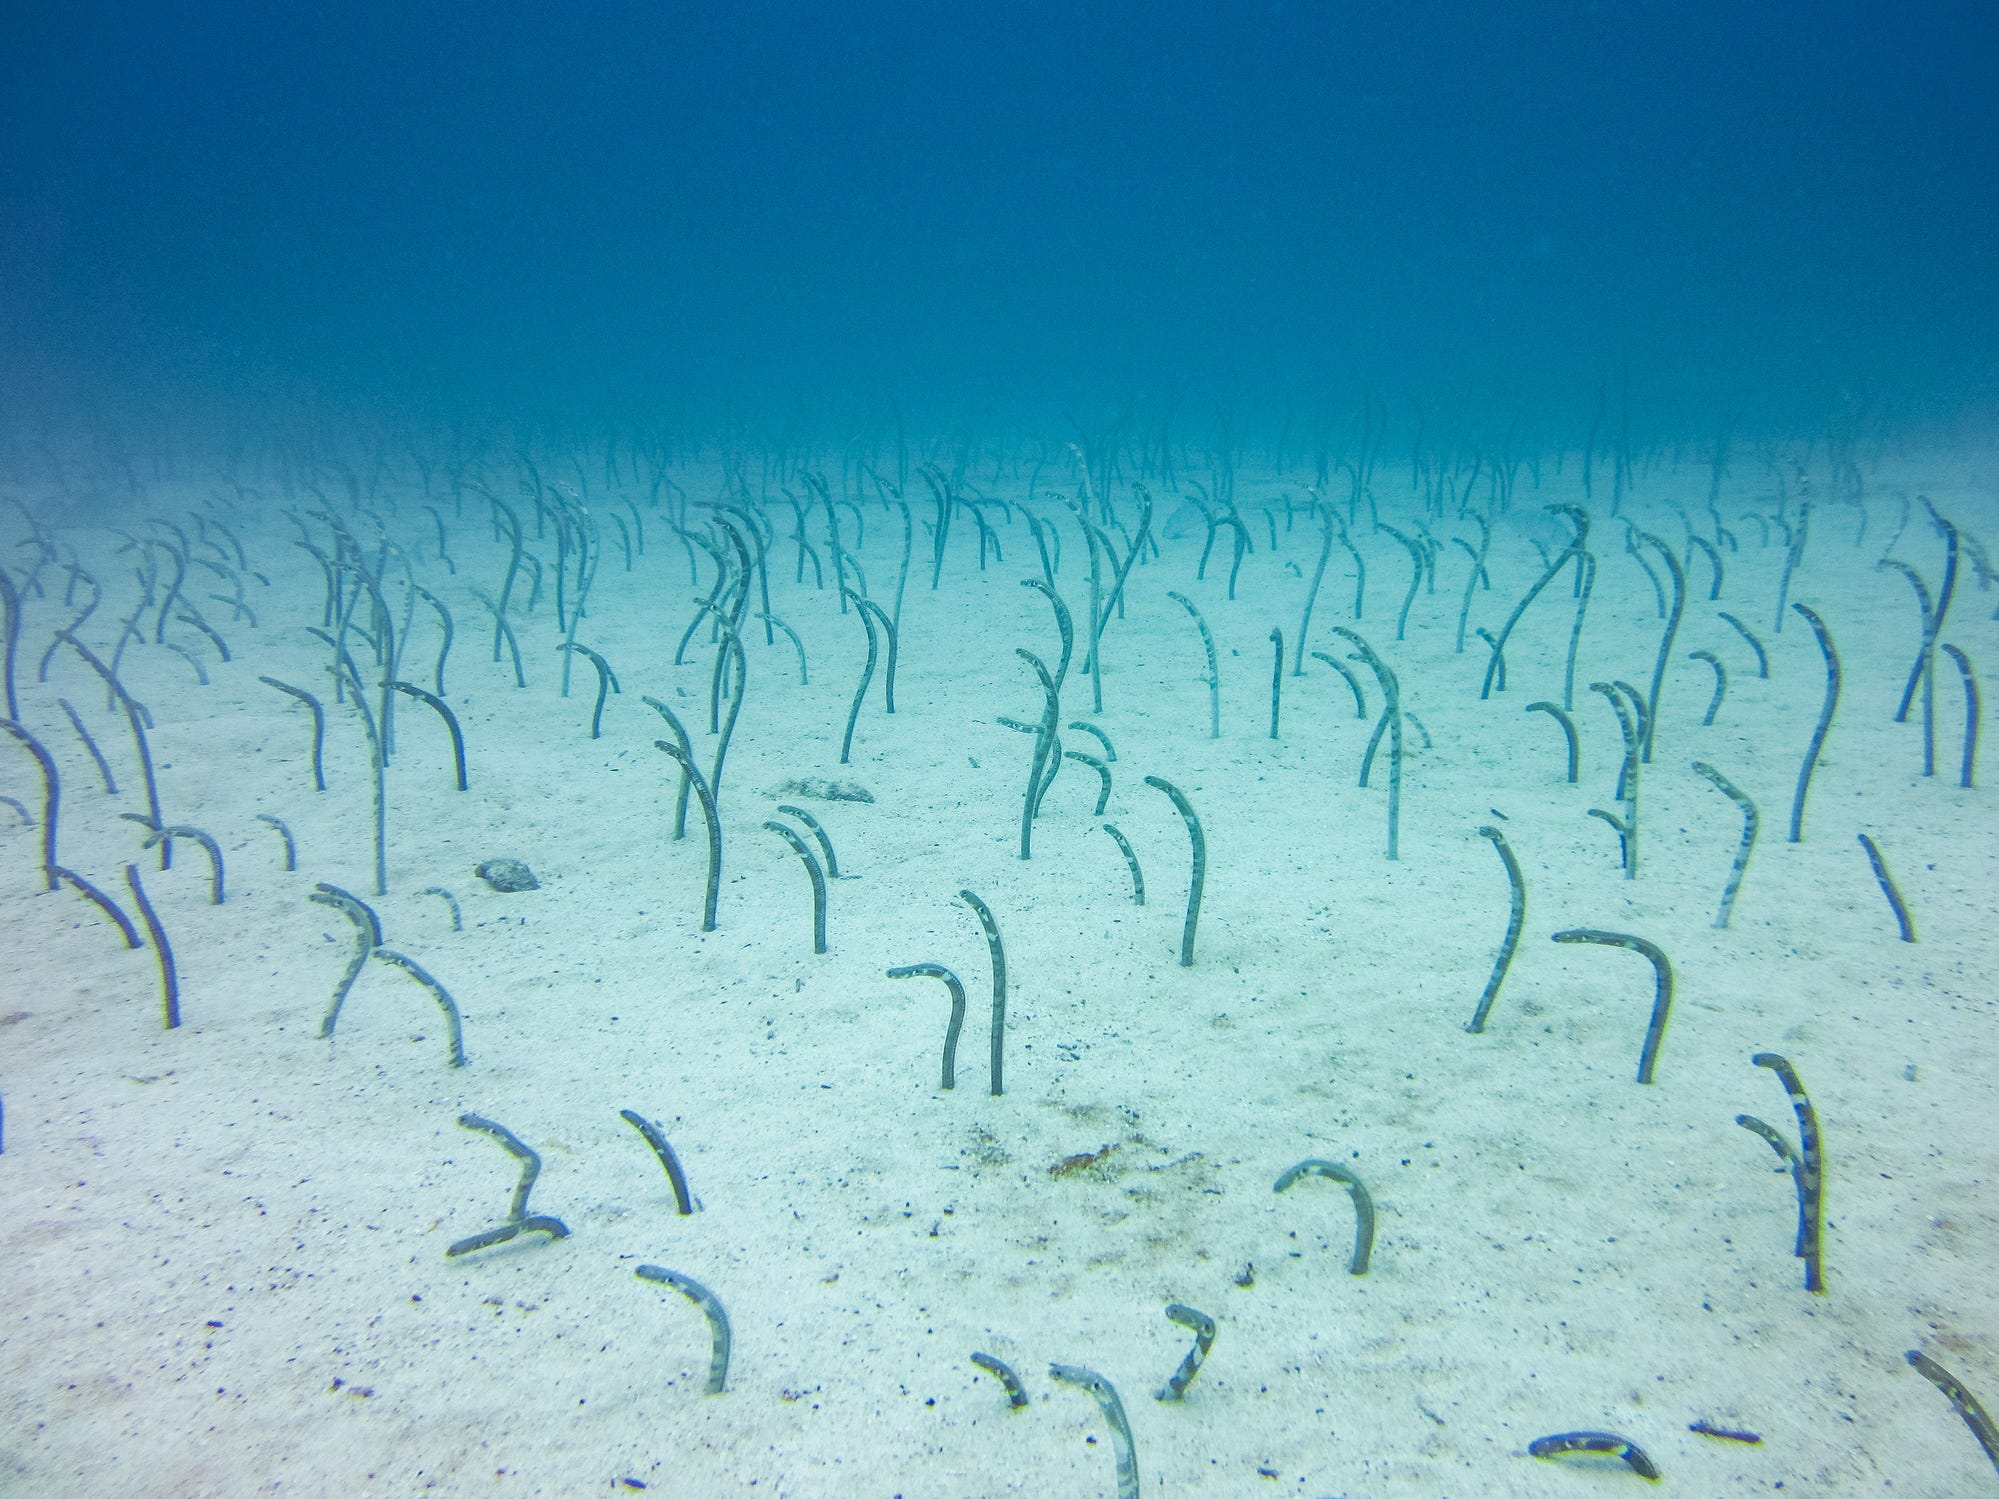 Garden eels in the Galapagos Islands, Ecuador.